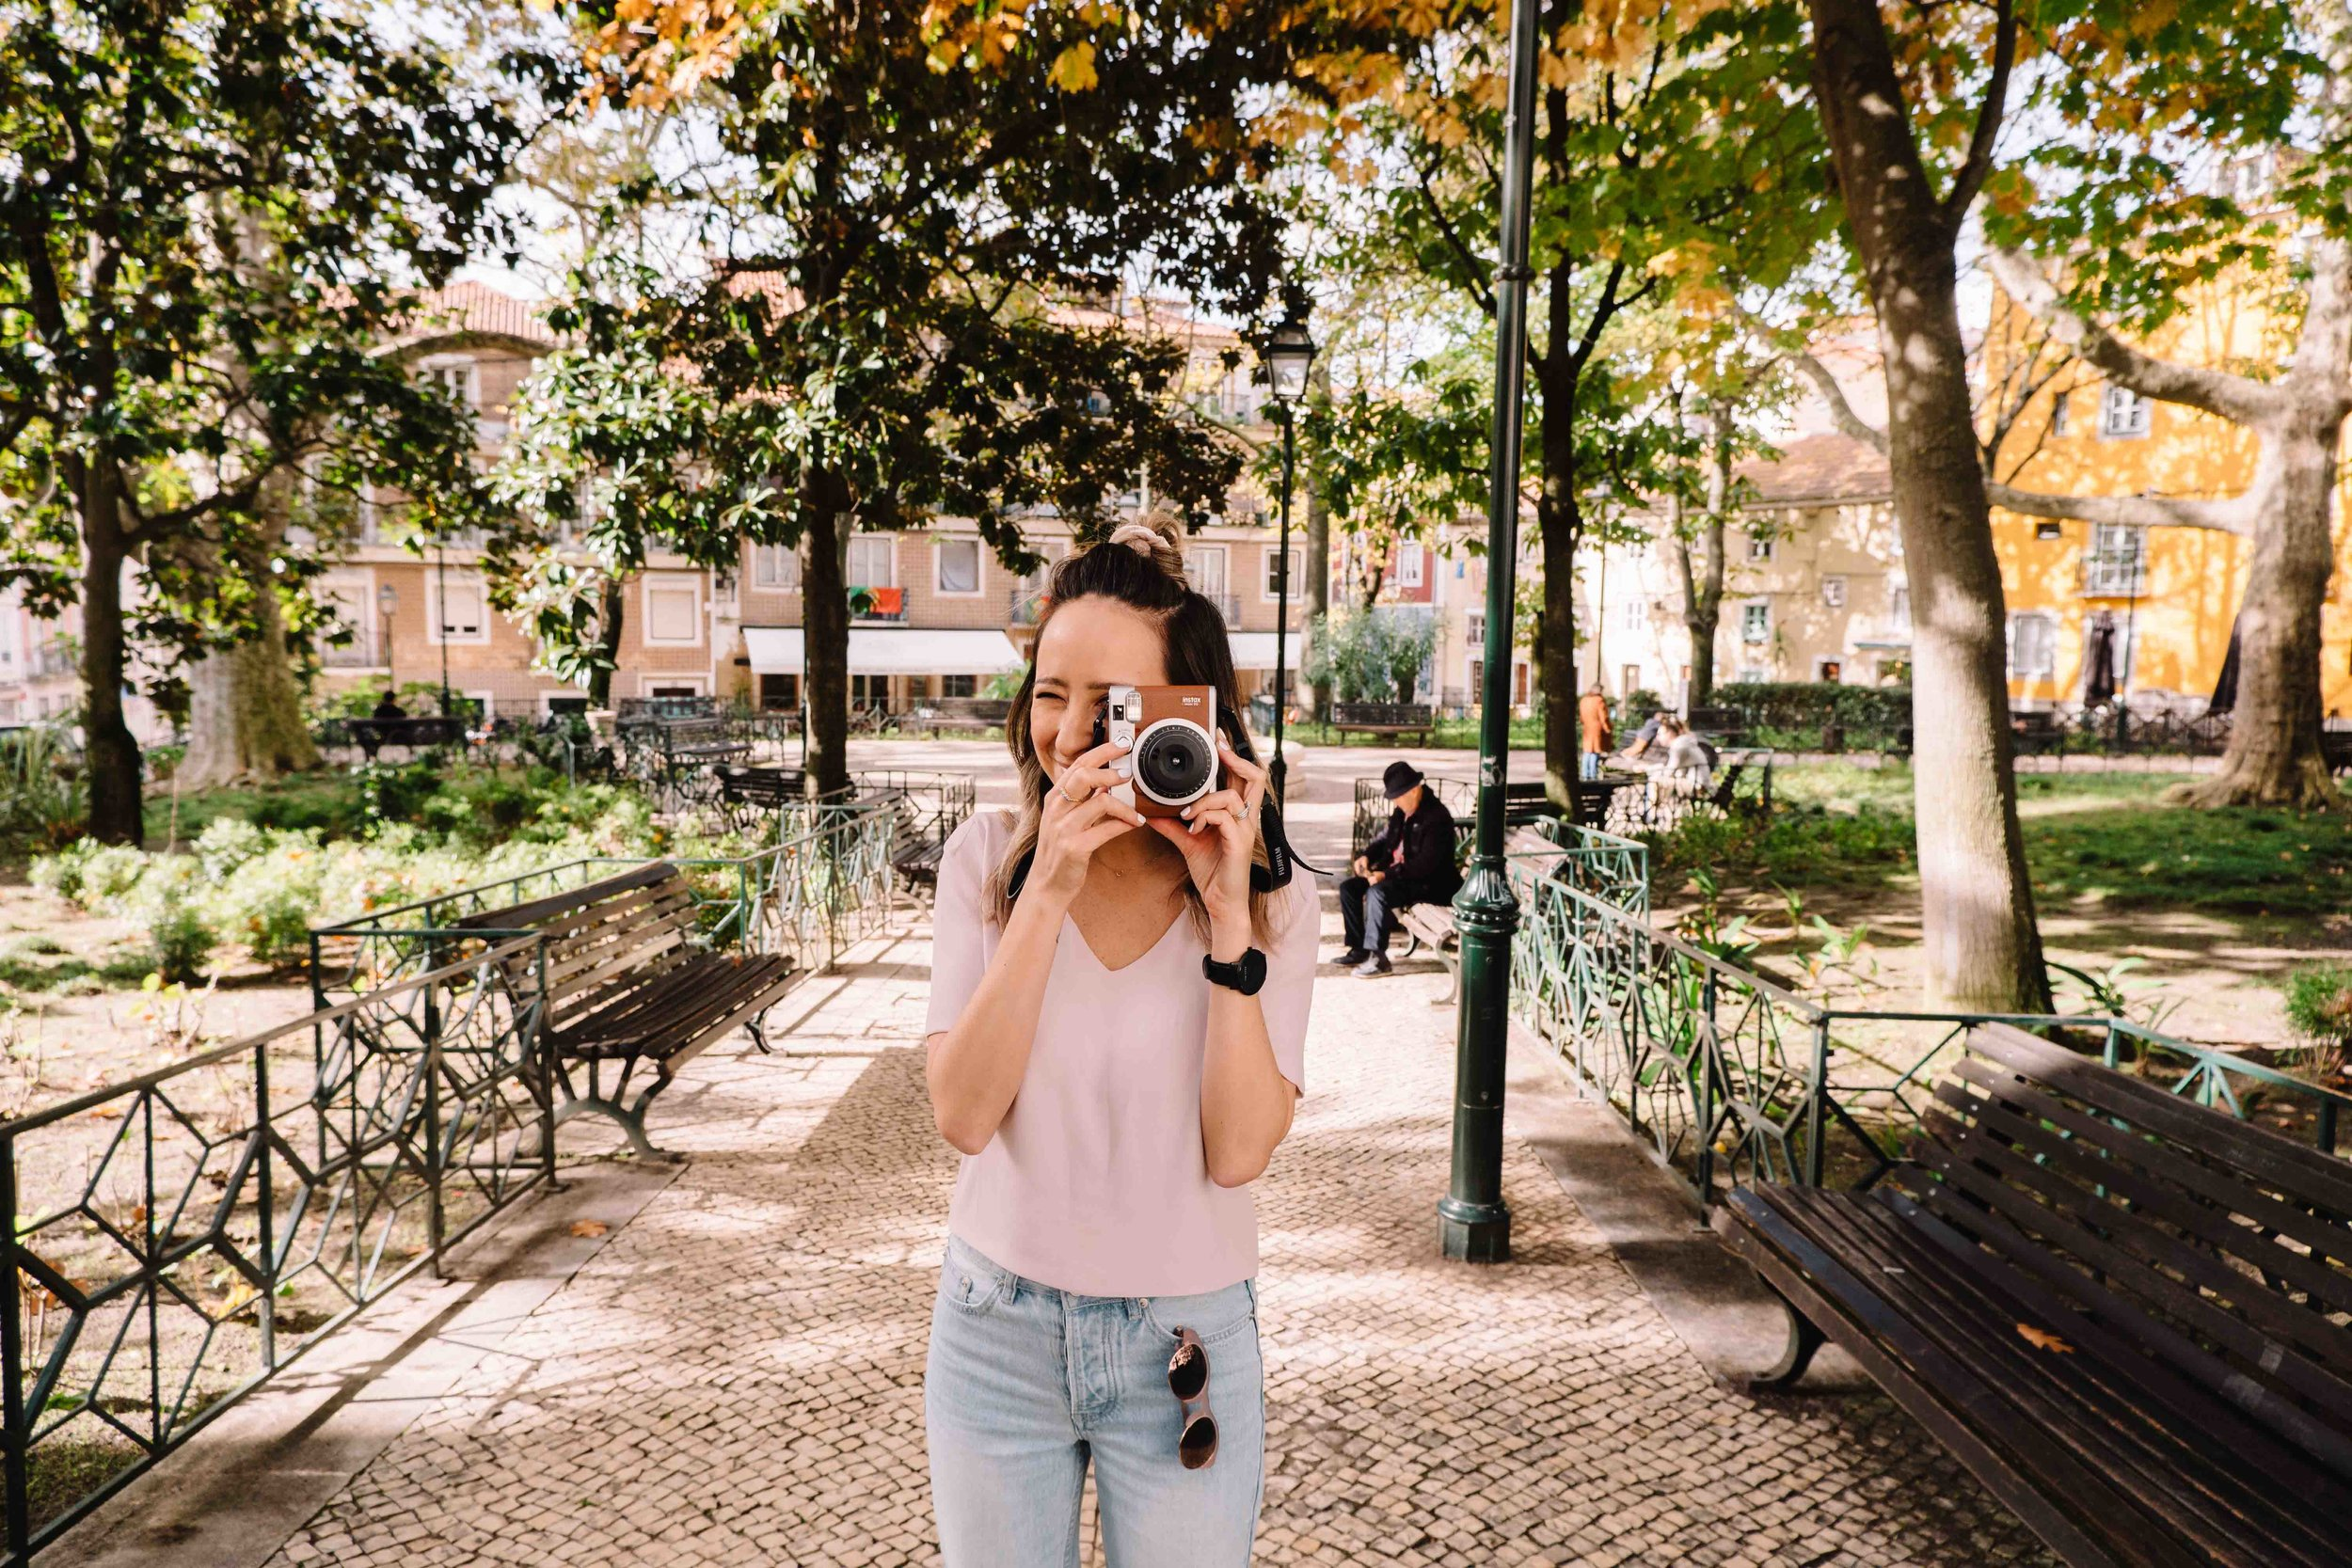 Snapping shots with our Fujifilm Instax 90 from Best Buy Canada